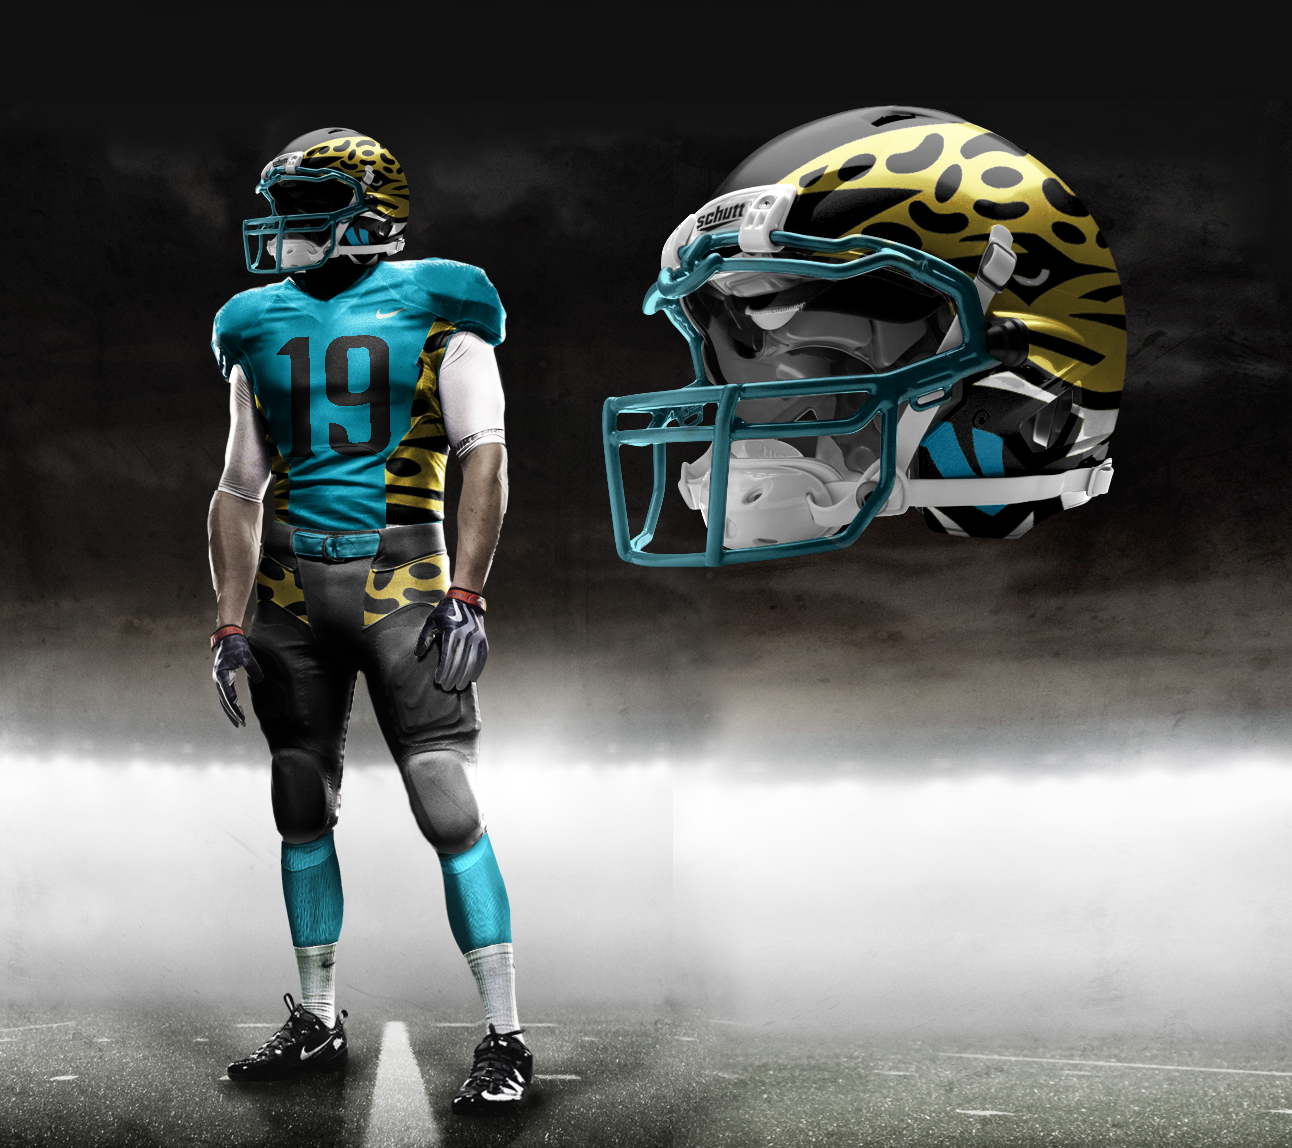 years look colors midnight different jerseys green so did kelly a they do ago on why than jaguar jaguars nfl philadelphia few at jacksonville the eagles colts